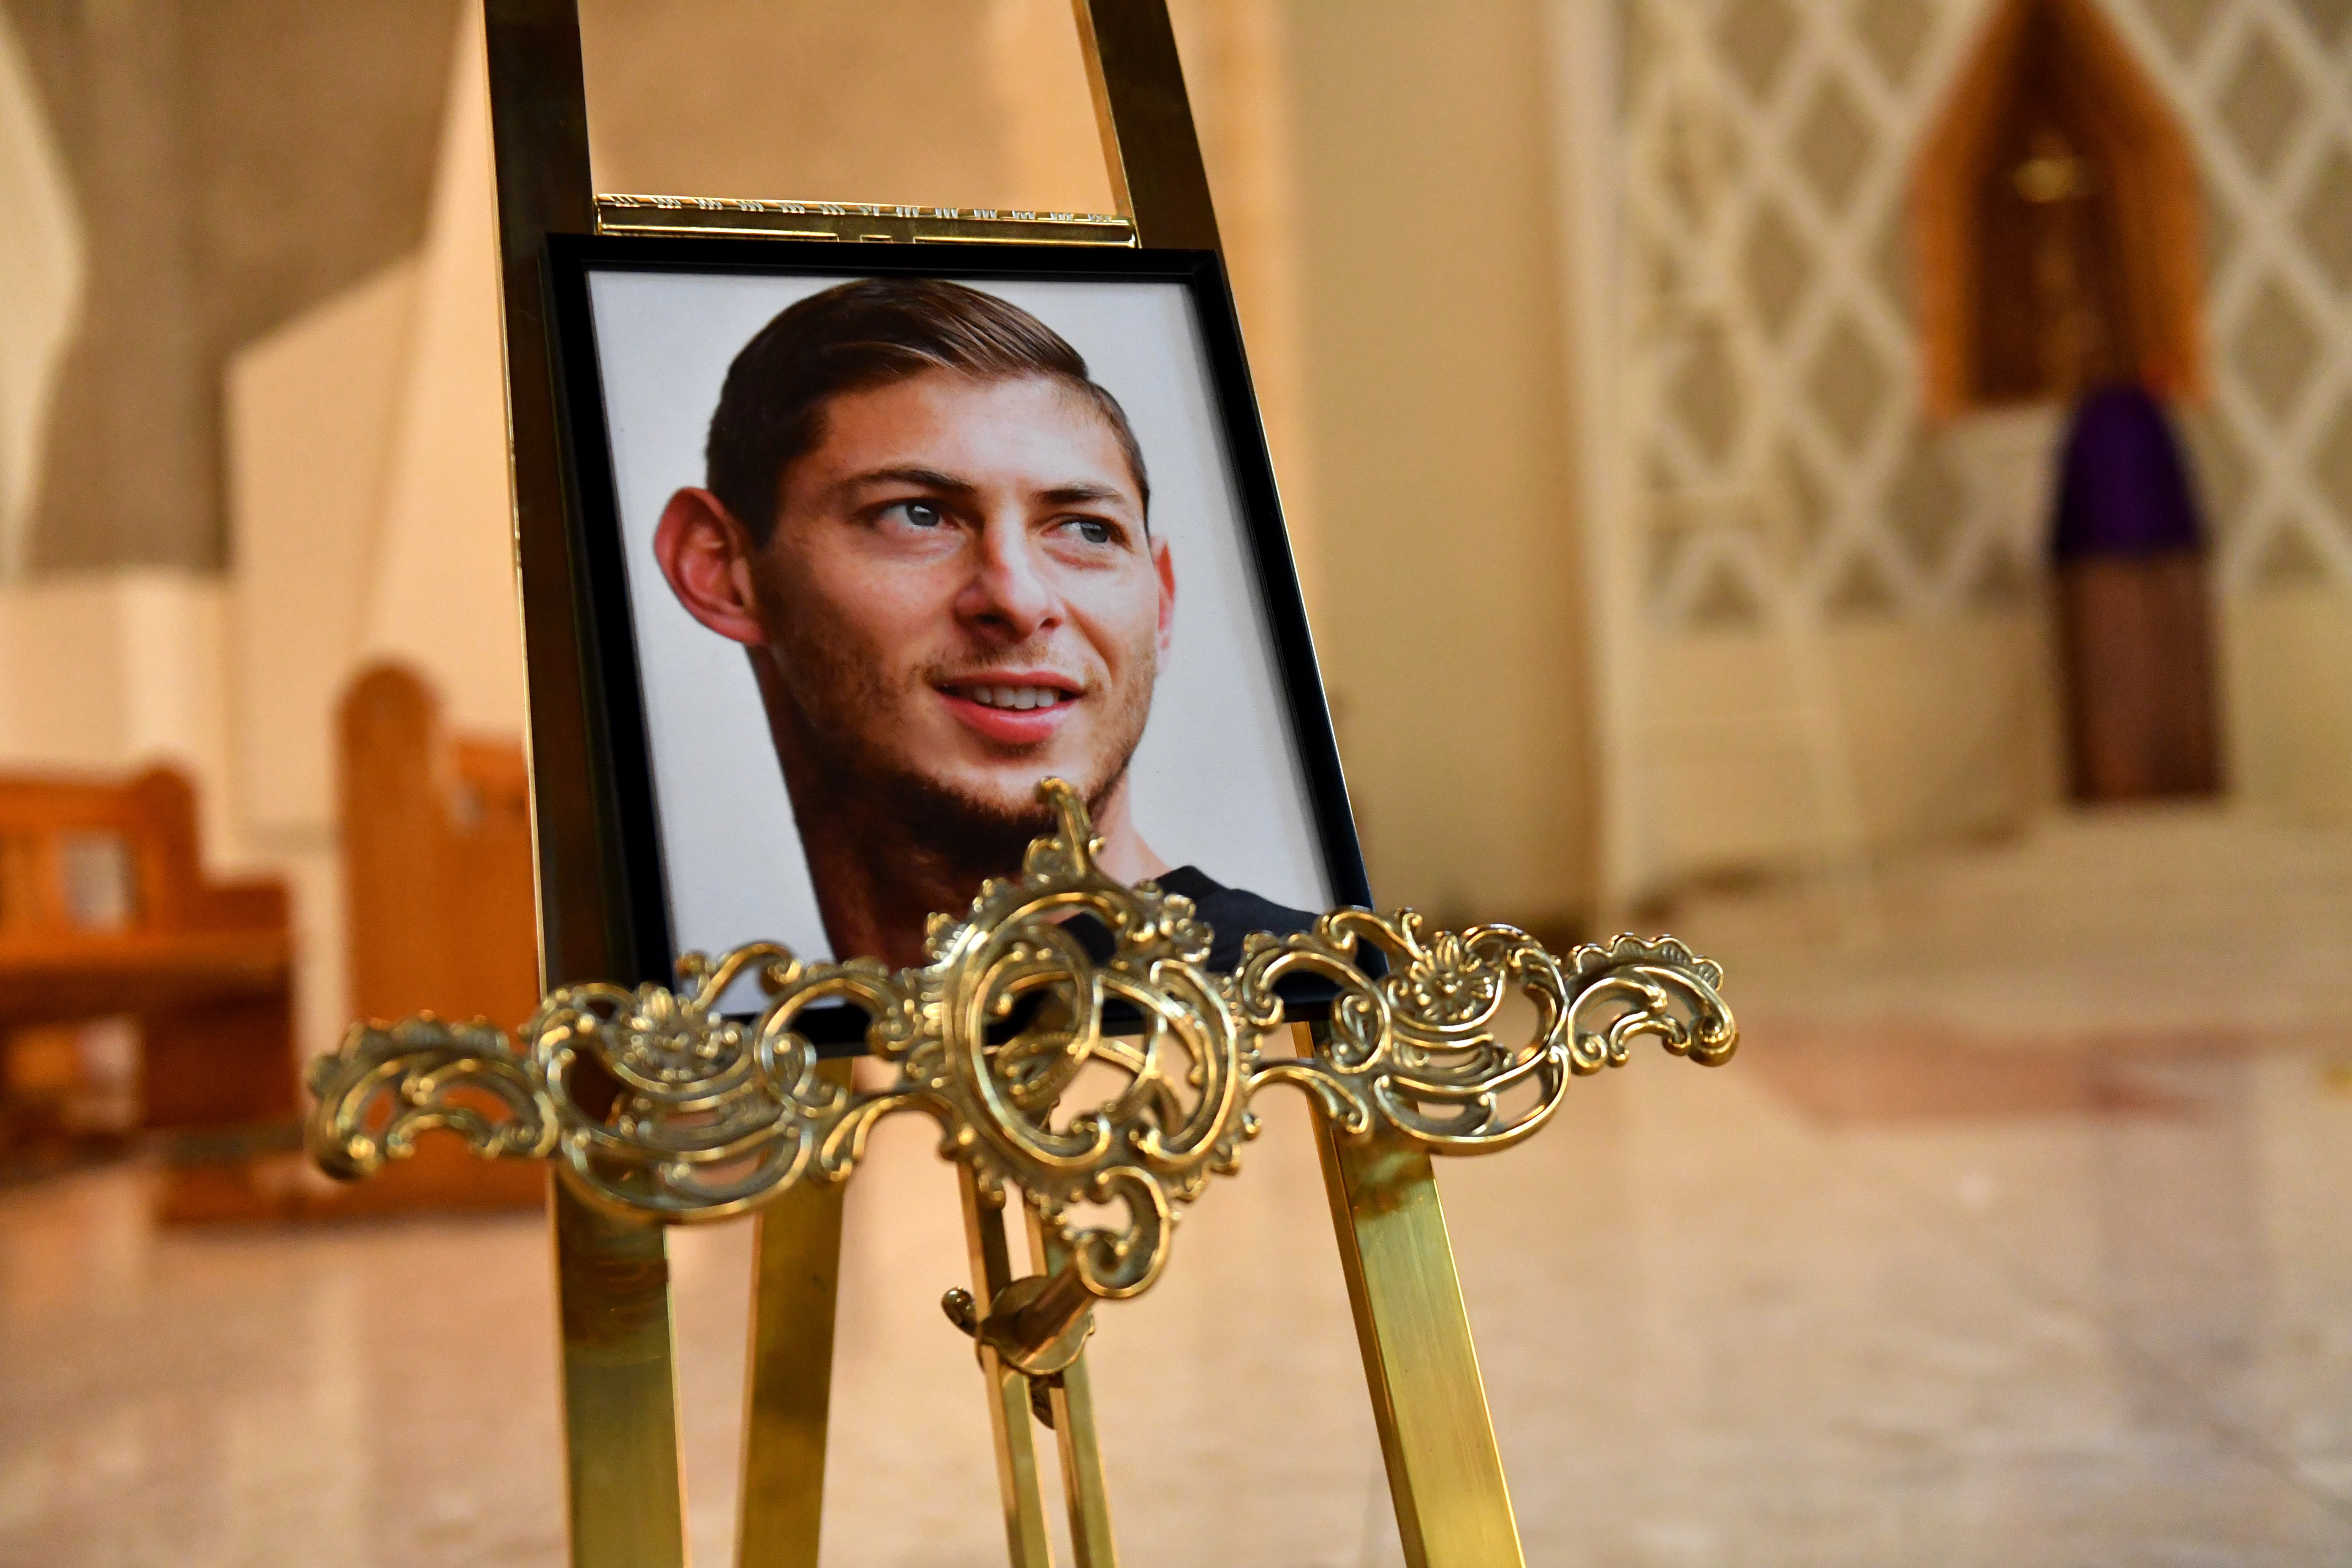 Emiliano Sala's family want 'answers' as they mark anniversary of his death